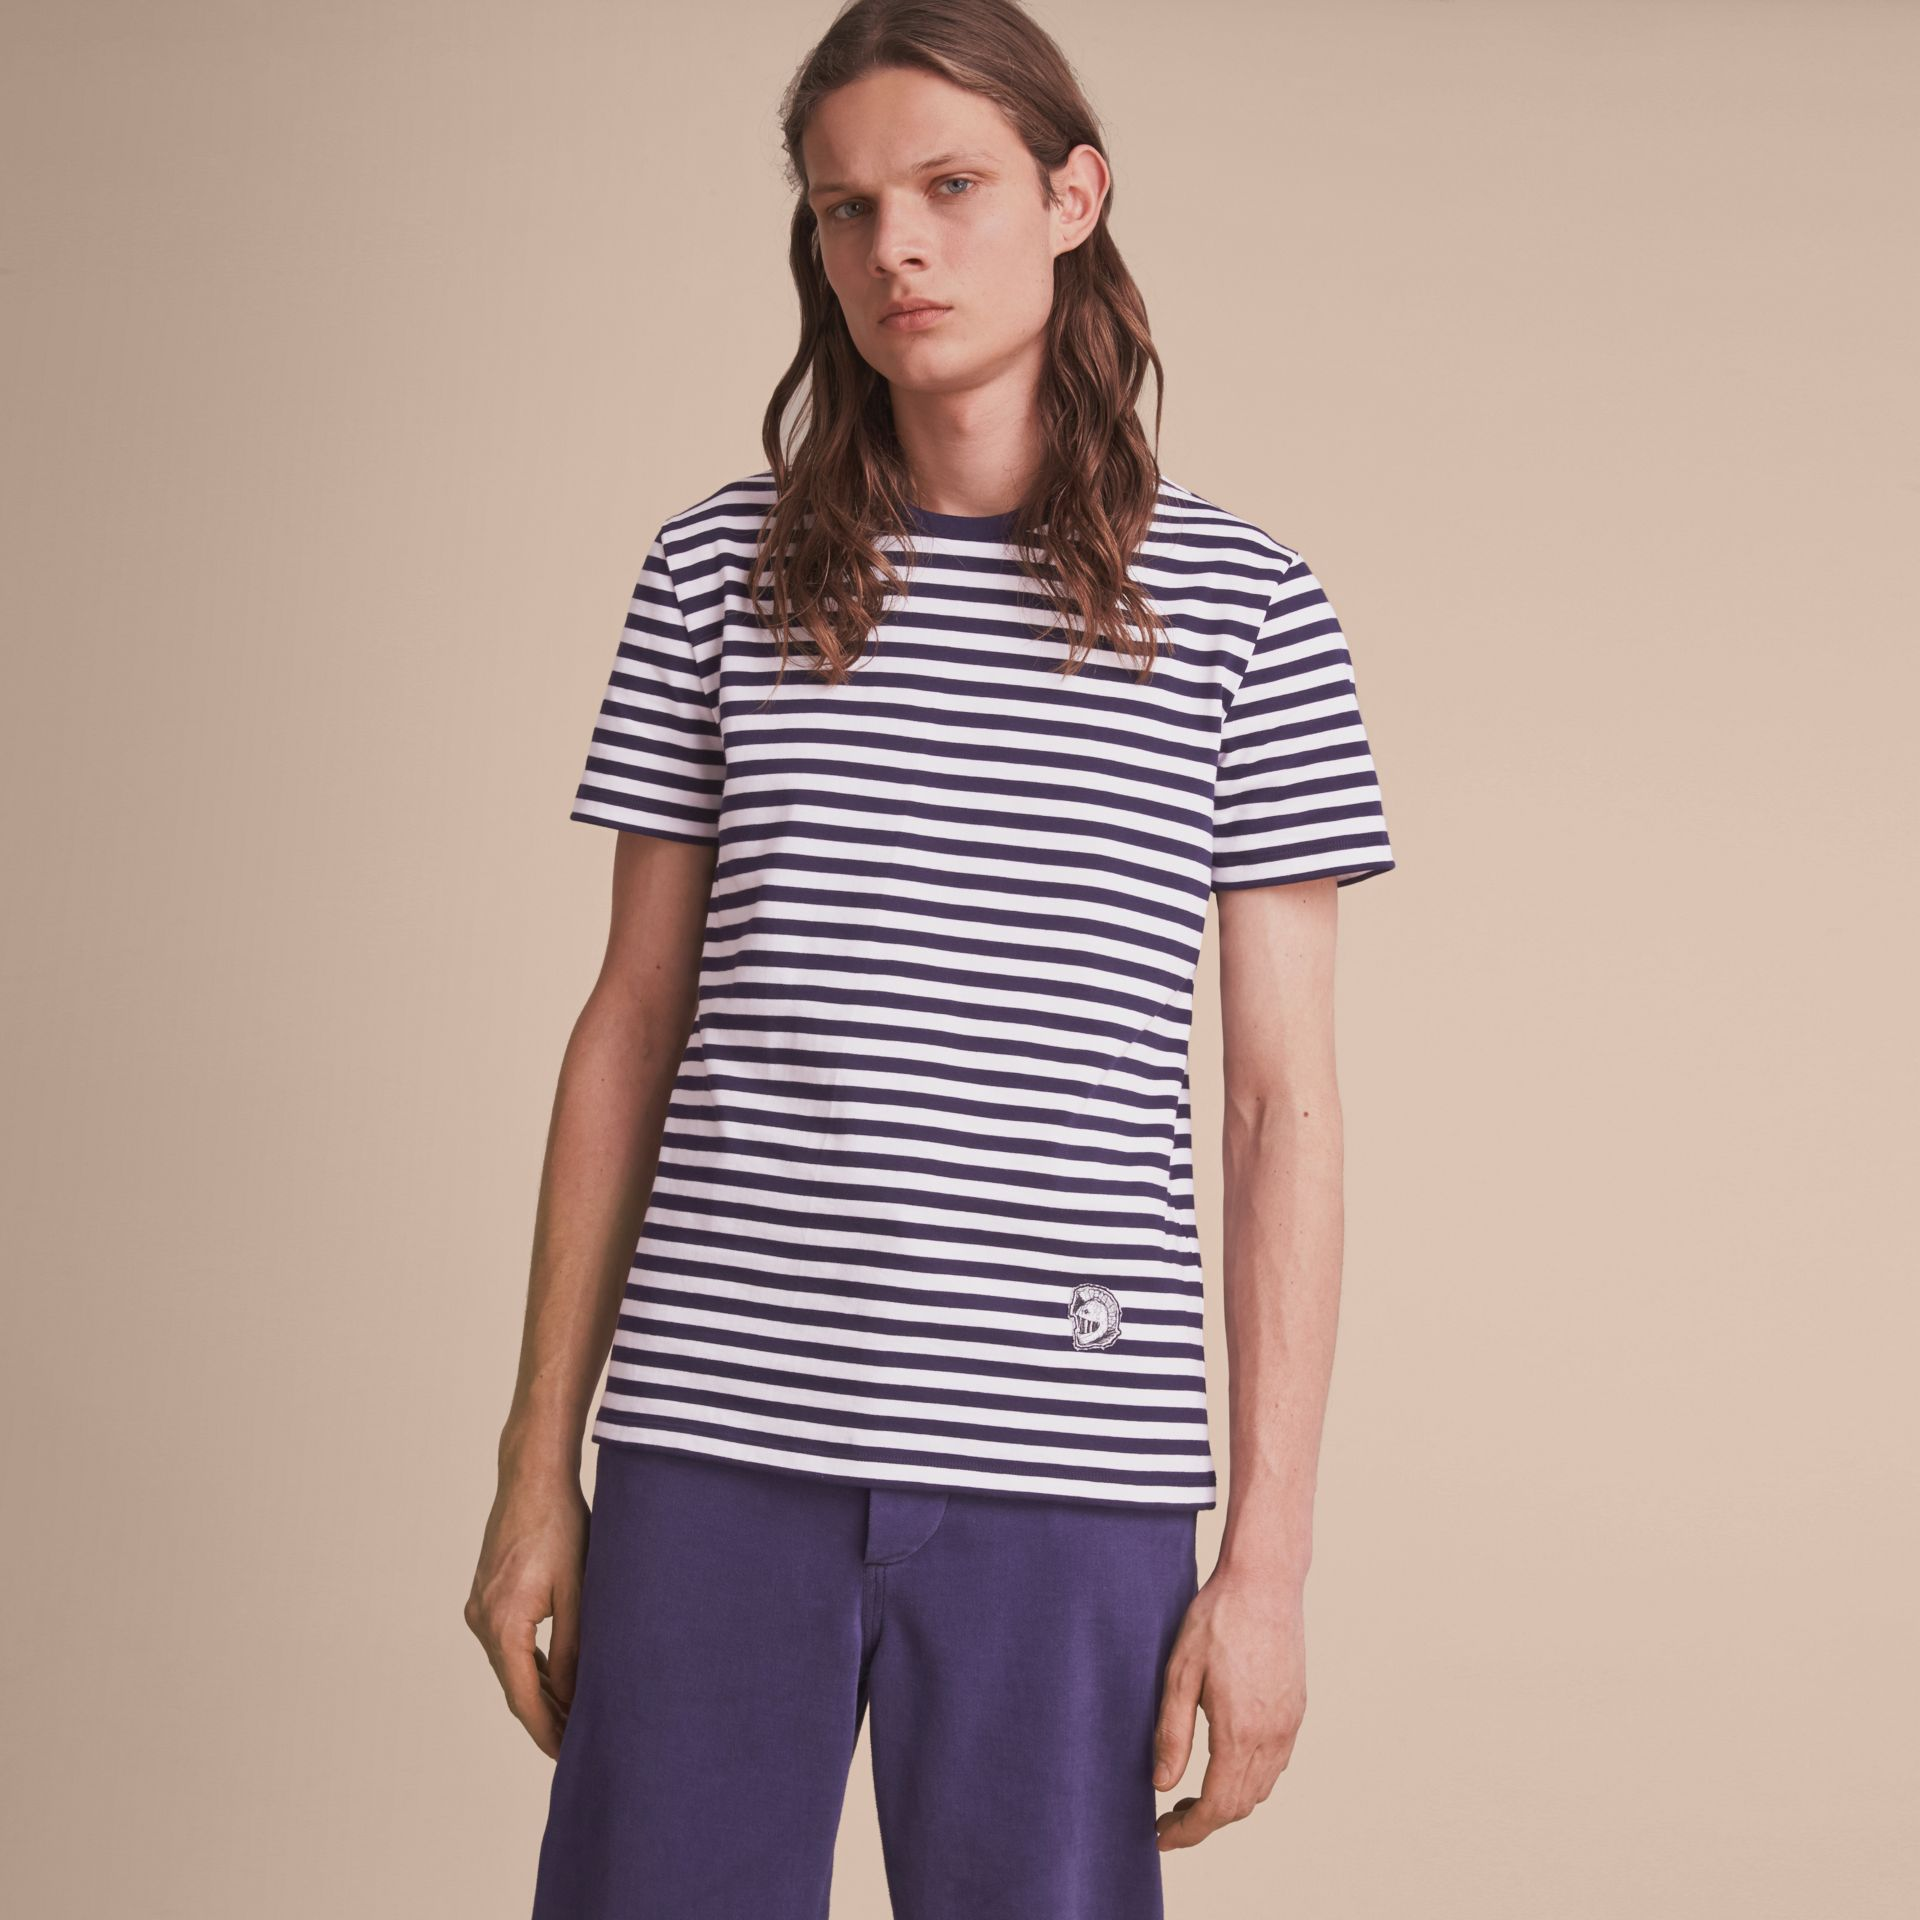 Breton Stripe Cotton T-shirt with Pallas Helmet Motif - gallery image 6